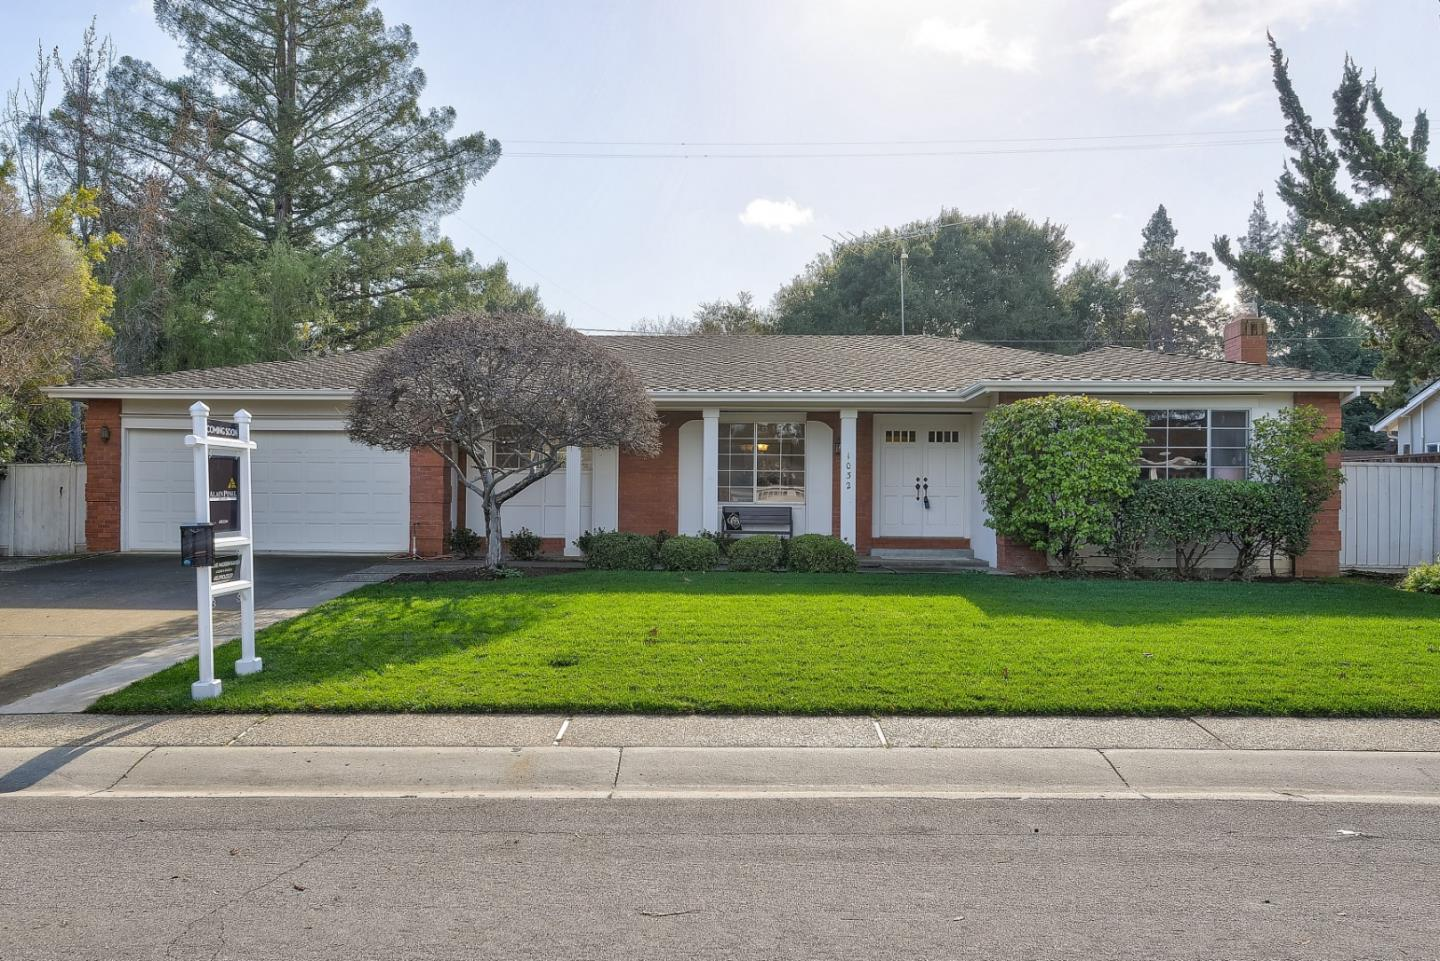 This is a fabulous chance to get into a highly sought after neighborhood in South Los Altos to create your dream home.  5 bedrooms, 2 ½ baths, a great single story floor plan. County records show it to be a 4 bedroom home, but at the time of construction in 1968, another bedroom was added. The owner passed away two years ago (not in the home) and was the only owner. While much of it is still in original condition, the opportunity to put one's footprint on it has endless opportunities.   Freshly painted with new flooring throughout, as well as updated lighting, hardware, toilets, and oven. The popcorn ceilings have been encased, the front yard completely re-landscaped, and waterline to the home from the street replaced.   Great location with easy access to the highly ranked Oak Grammar School, Blach Junior High and Mountain View High, as well as freeways, parks, and shopping.